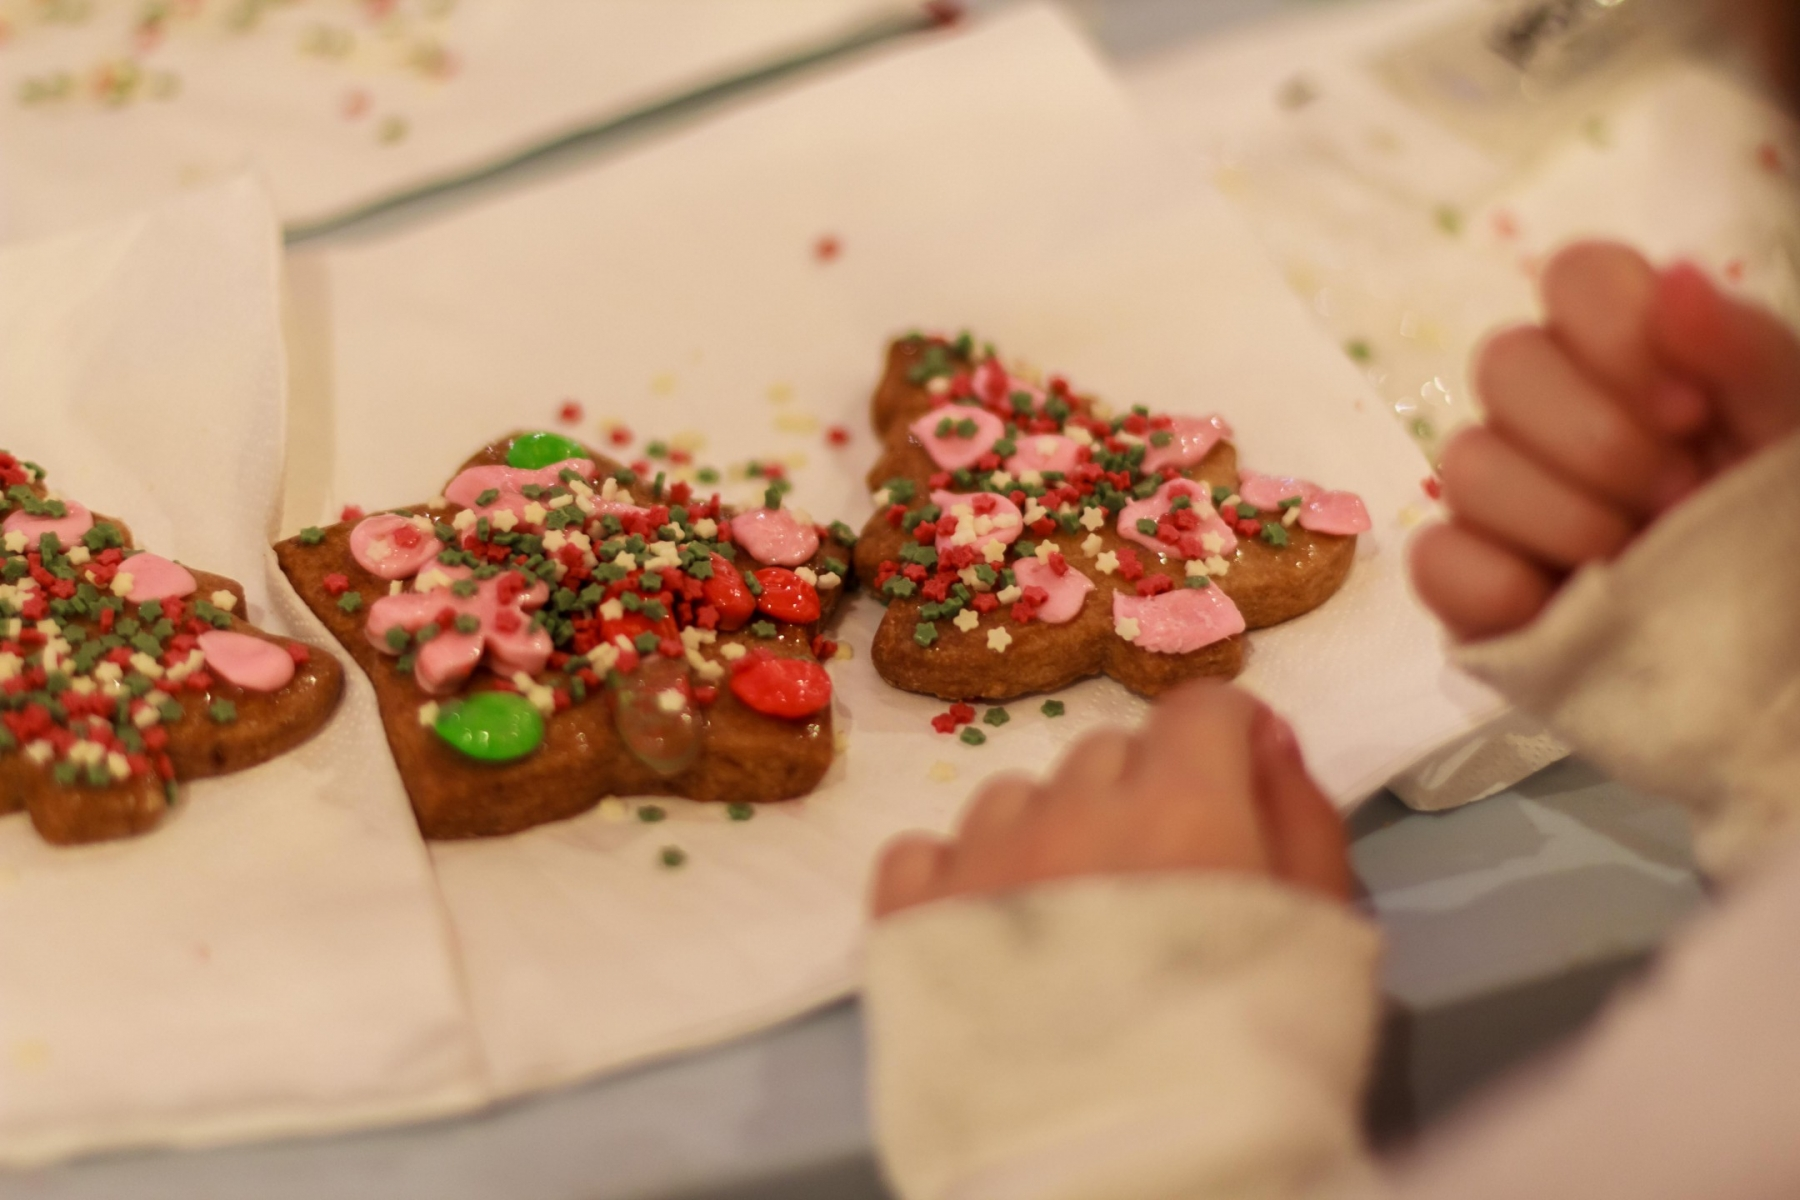 take a look at some of the photos taken at our decorate christmas cookies activity - How To Decorate Christmas Cookies